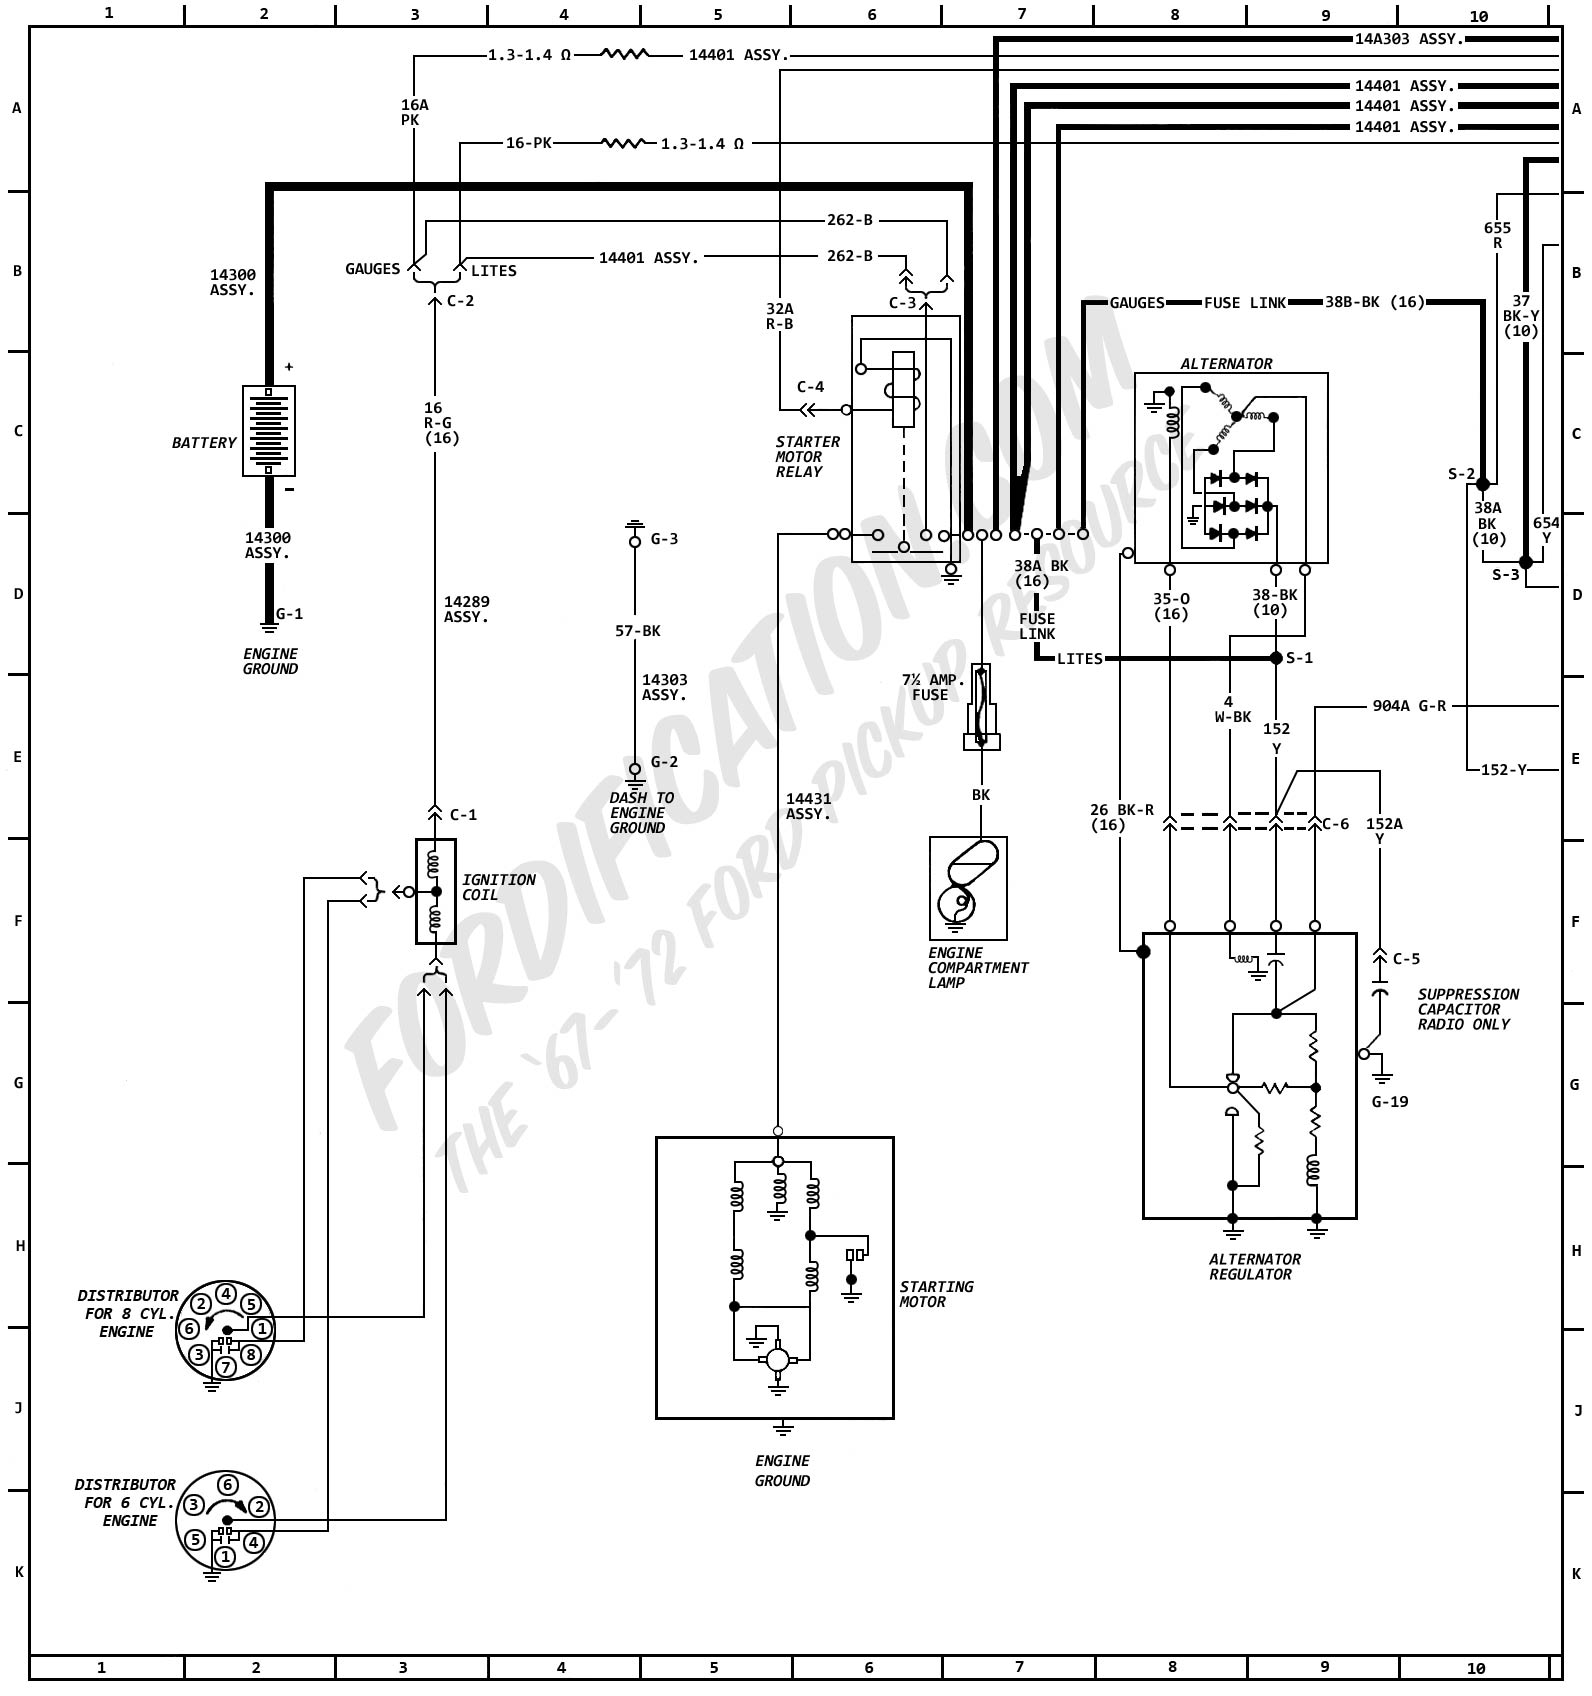 1972 ford truck wiring diagrams fordification com rh fordification com ford msd ignition wiring diagram ford 8n ignition wiring diagram